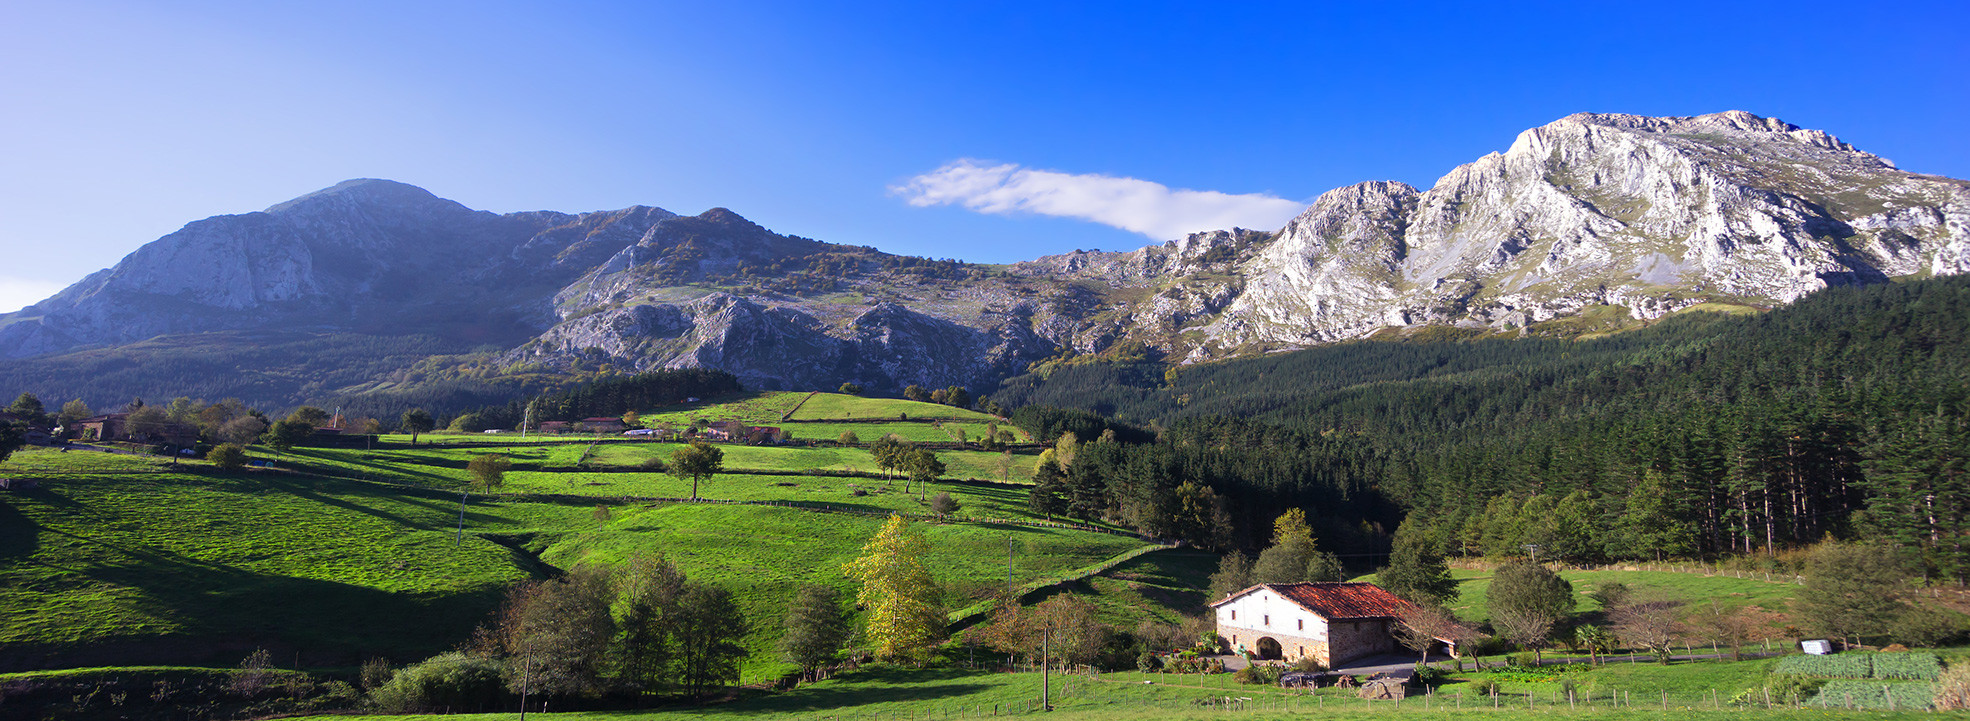 Magnificent landscapes for our Basque mountains